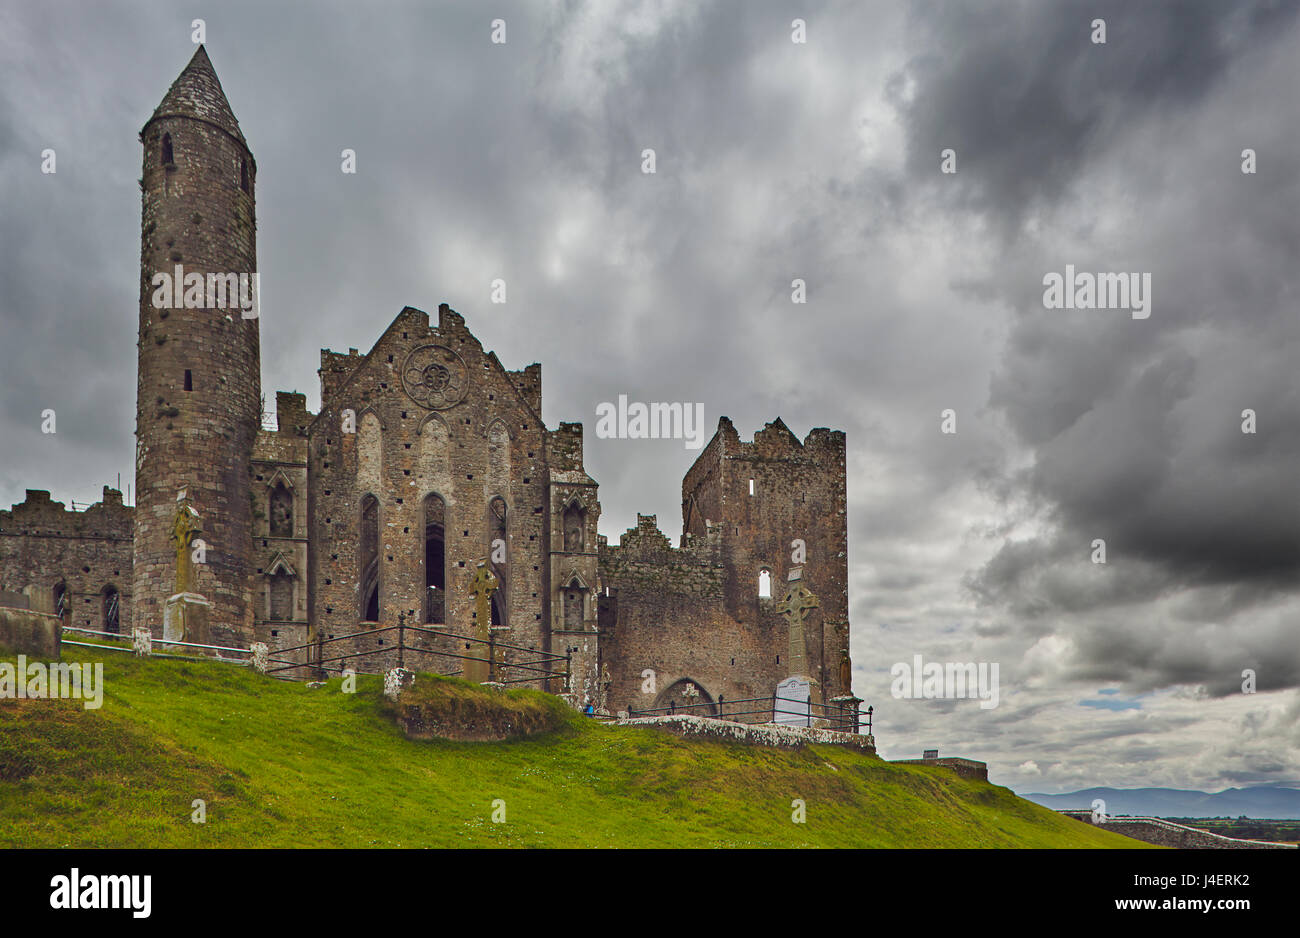 The ruins of the Rock of Cashel, Cashel, County Tipperary, Munster, Republic of Ireland, Europe Stock Photo